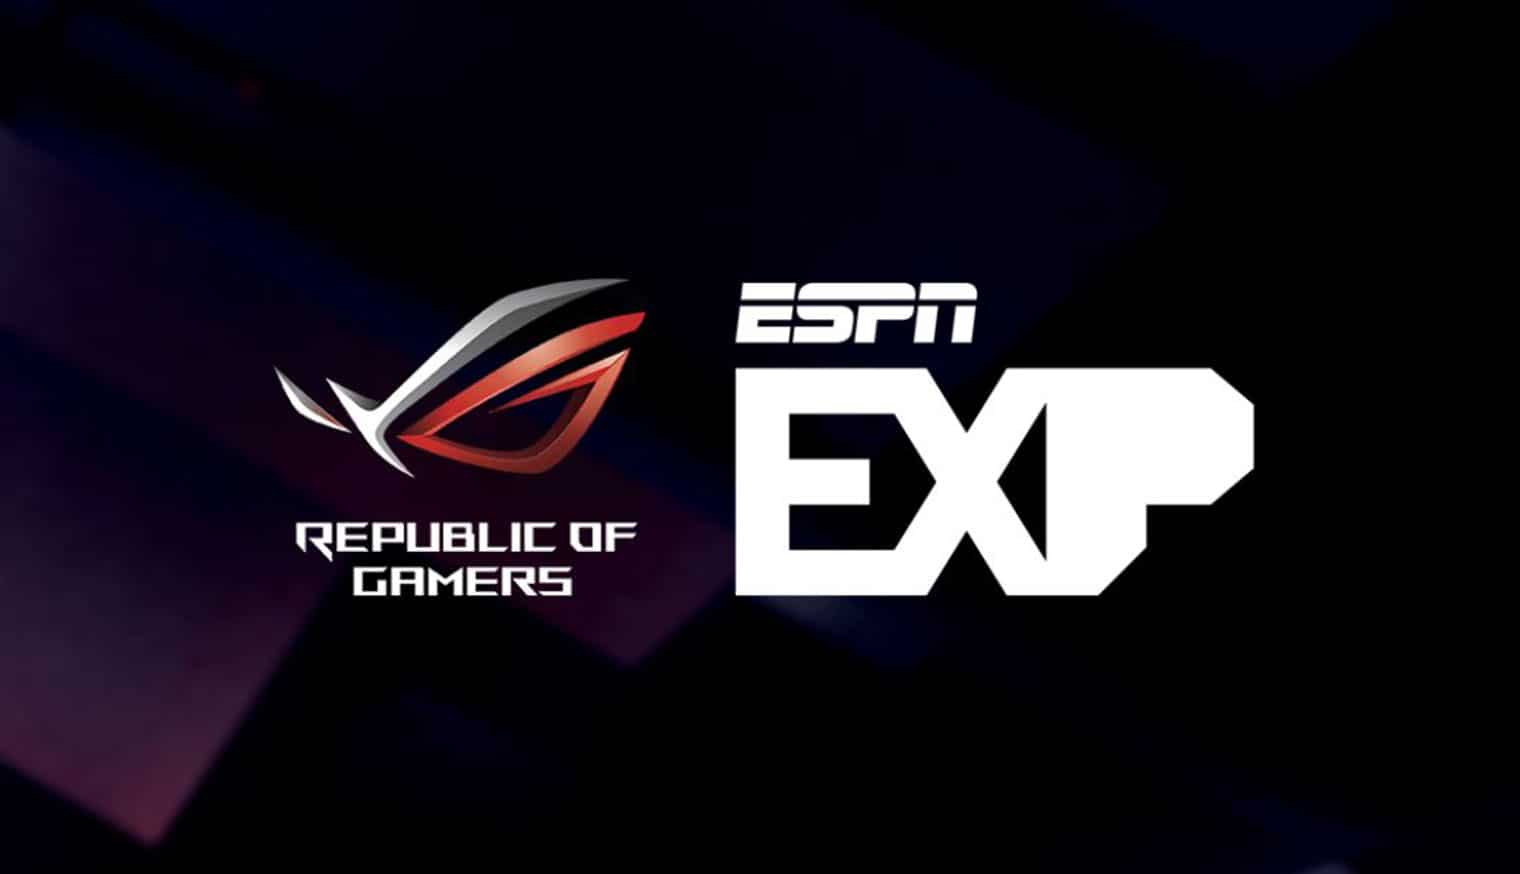 rog collaborates with espn at exp sports gaming series